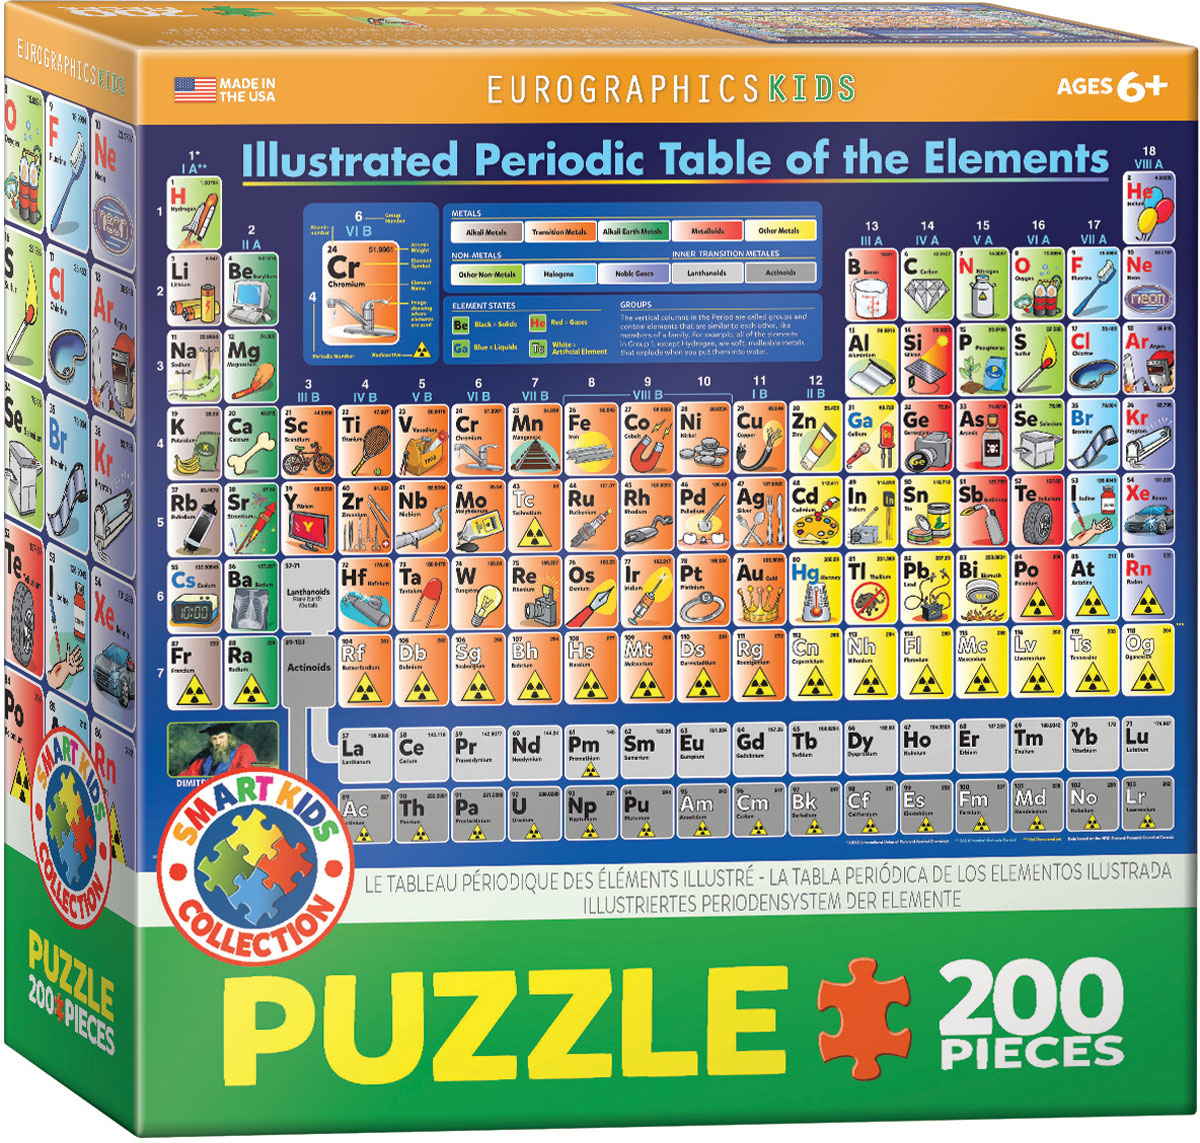 Periodic Table Illustrated Jigsaw Puzzles At Eurographics